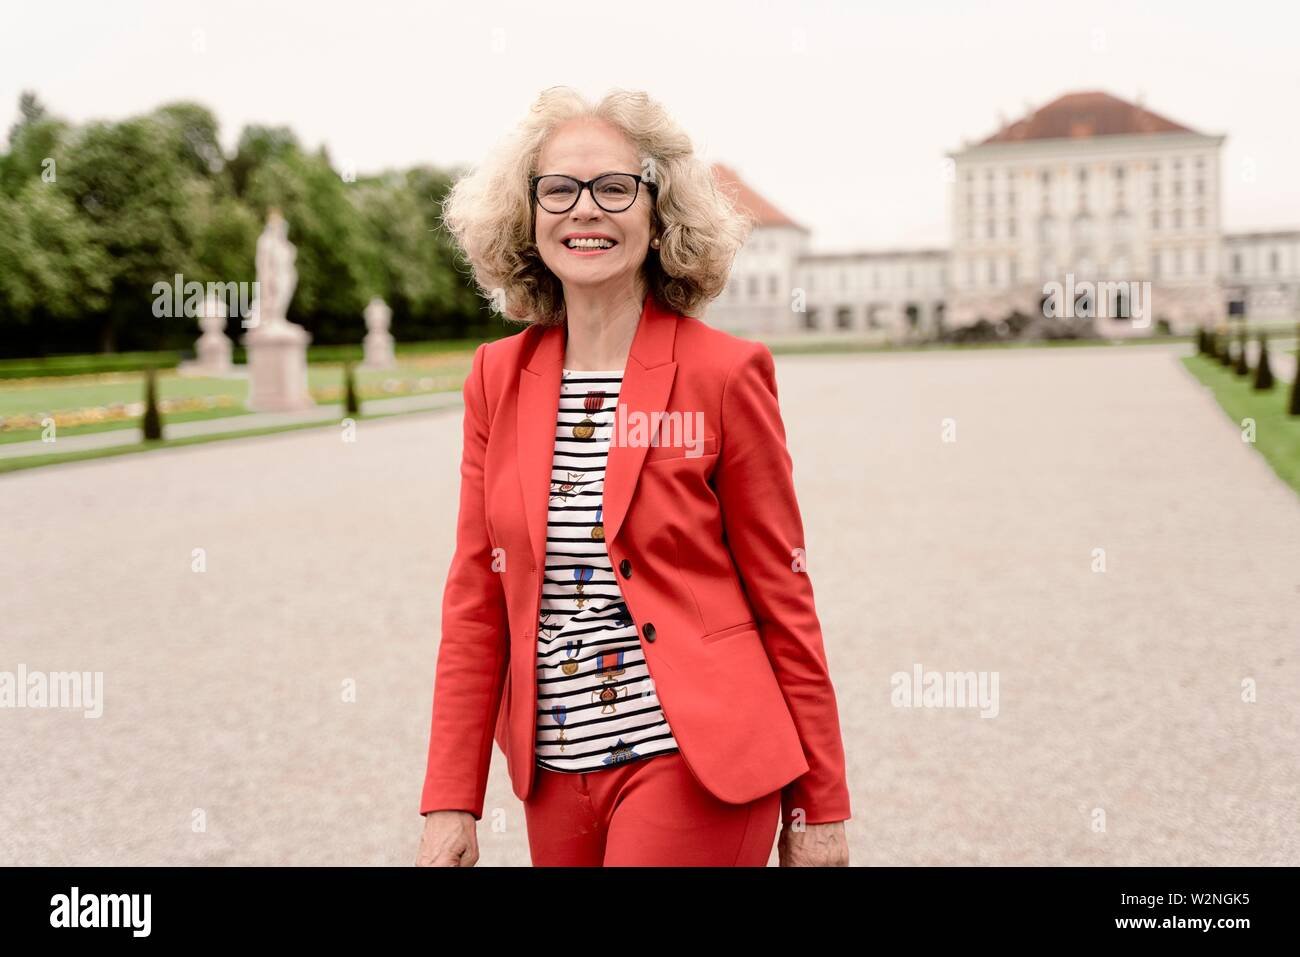 smiling senior woman (67 years old) in park at touristic sight Nymphenburg palace, in Munich, Germany. - Stock Image